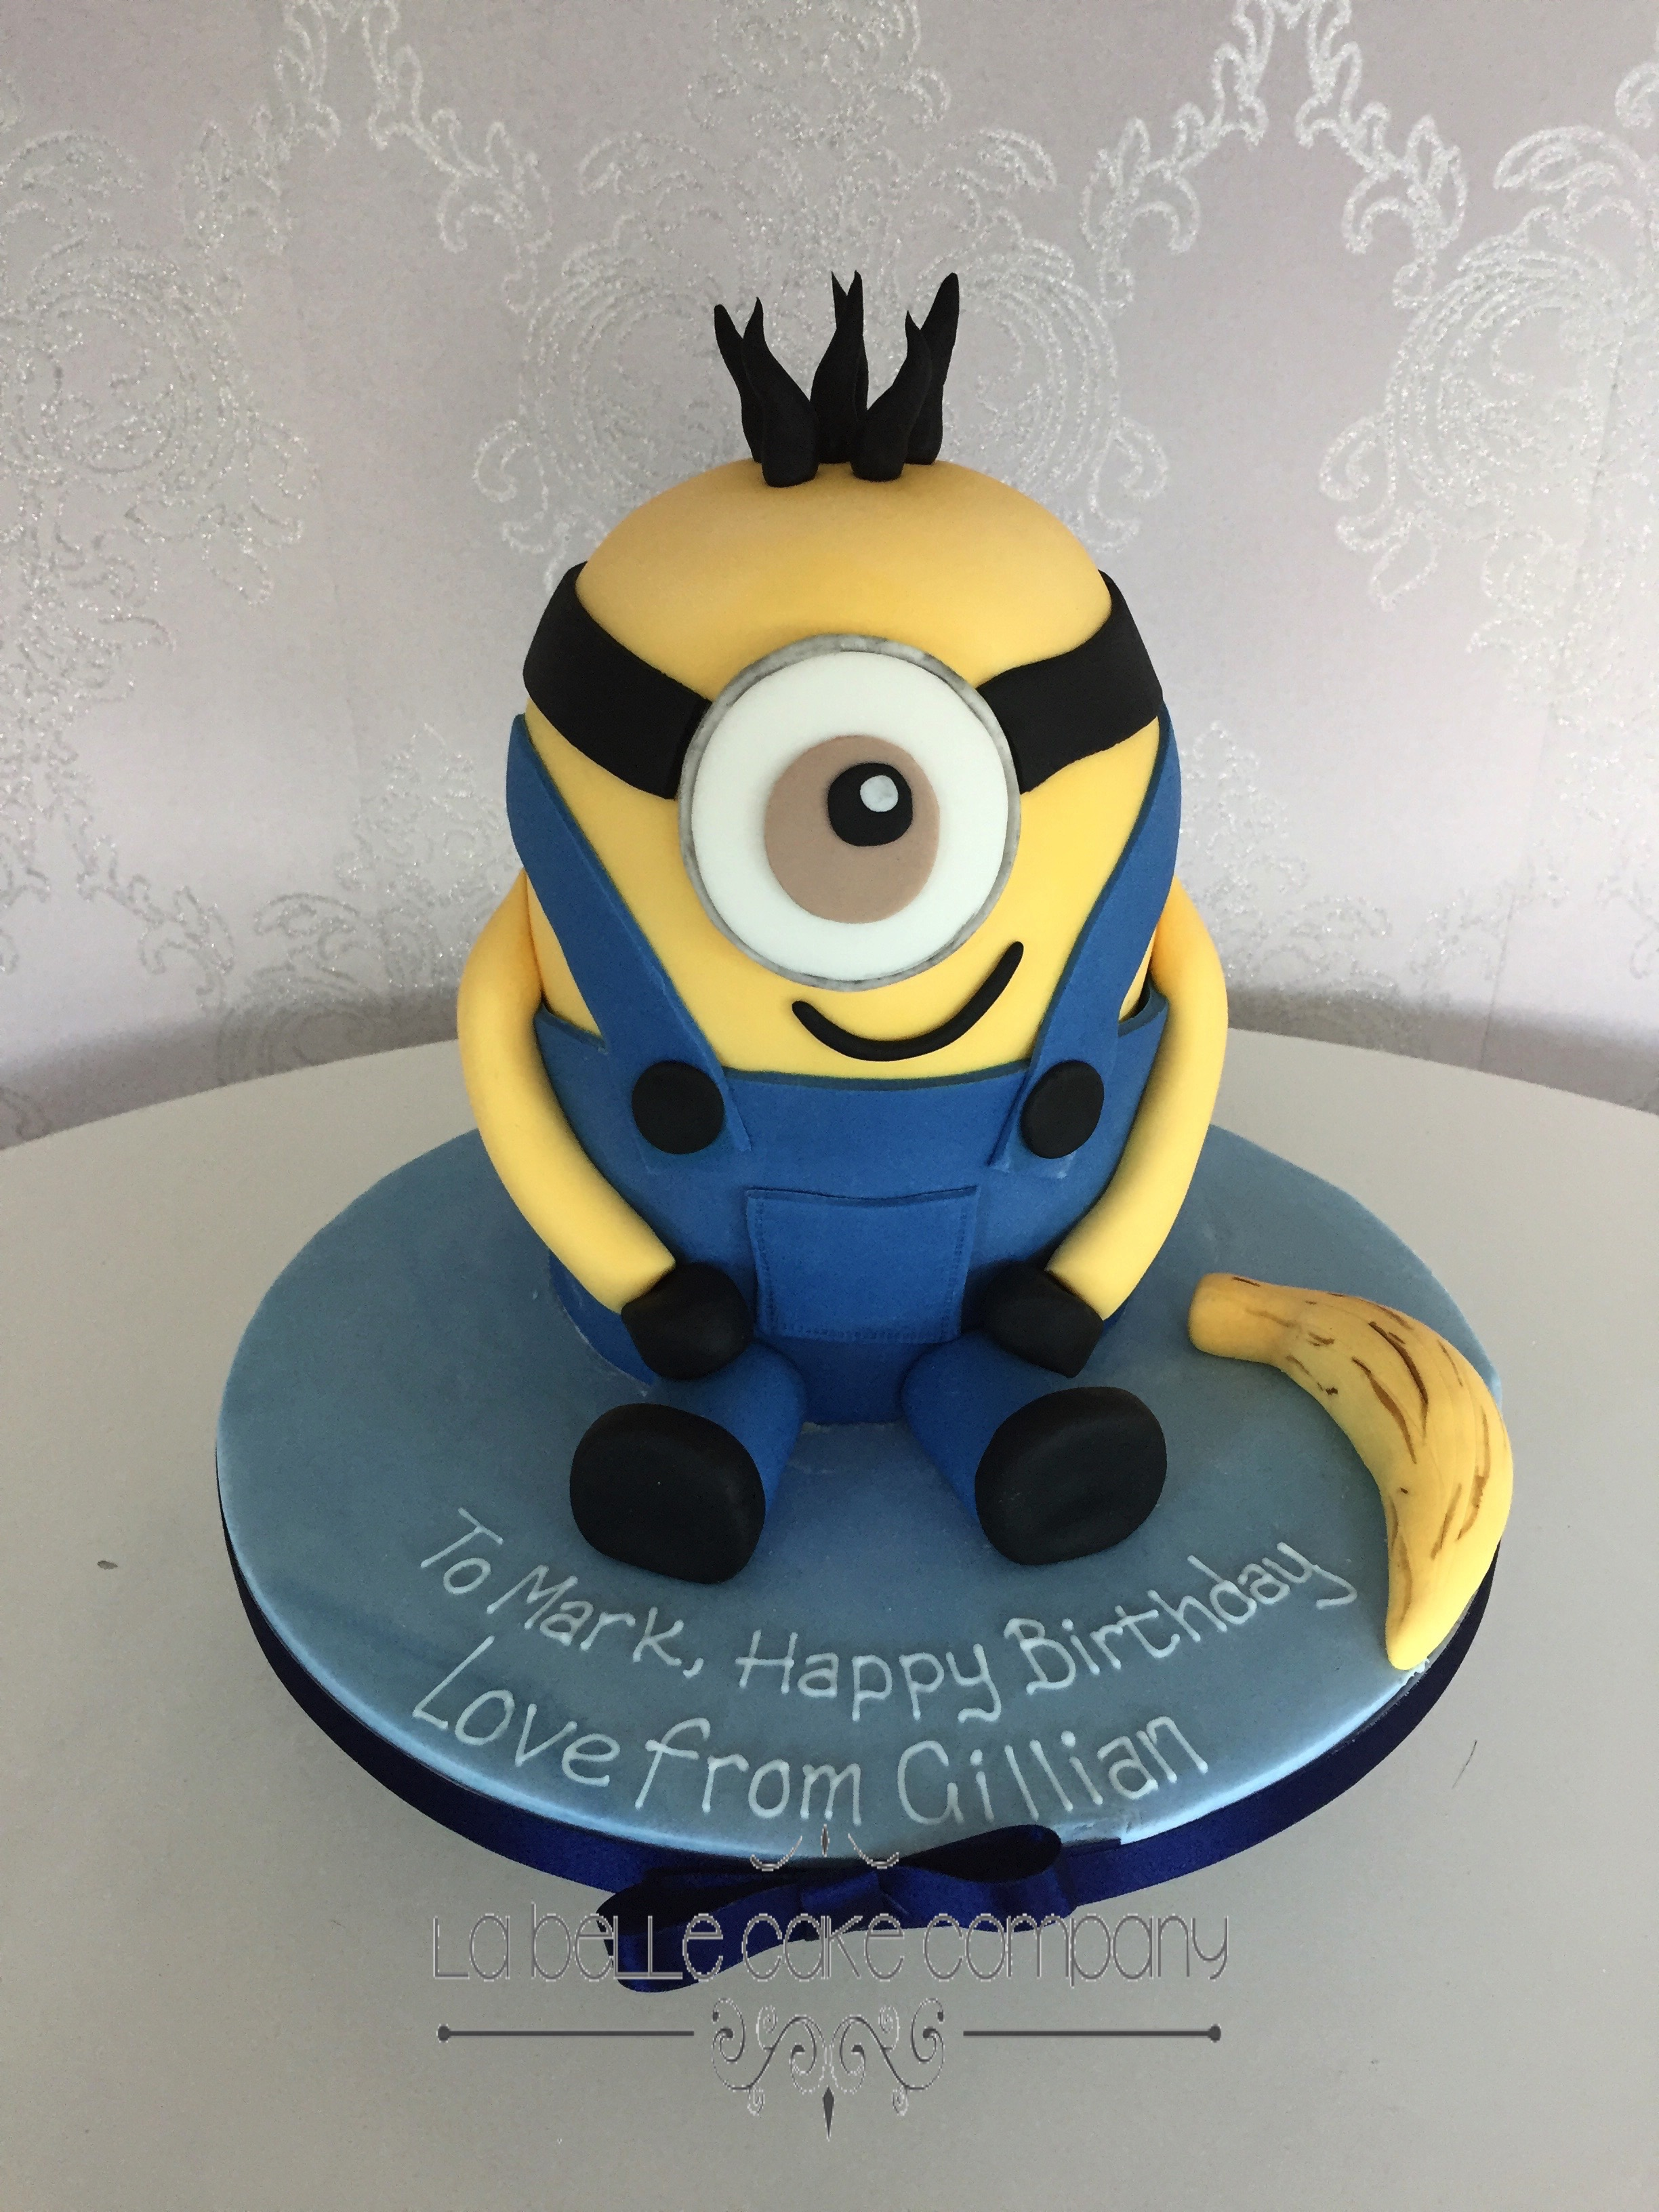 3D Minion Despicable Me Gru Sculpted Birthday Cakes Hertfordshire London Bedfordshire Buckinghamshire